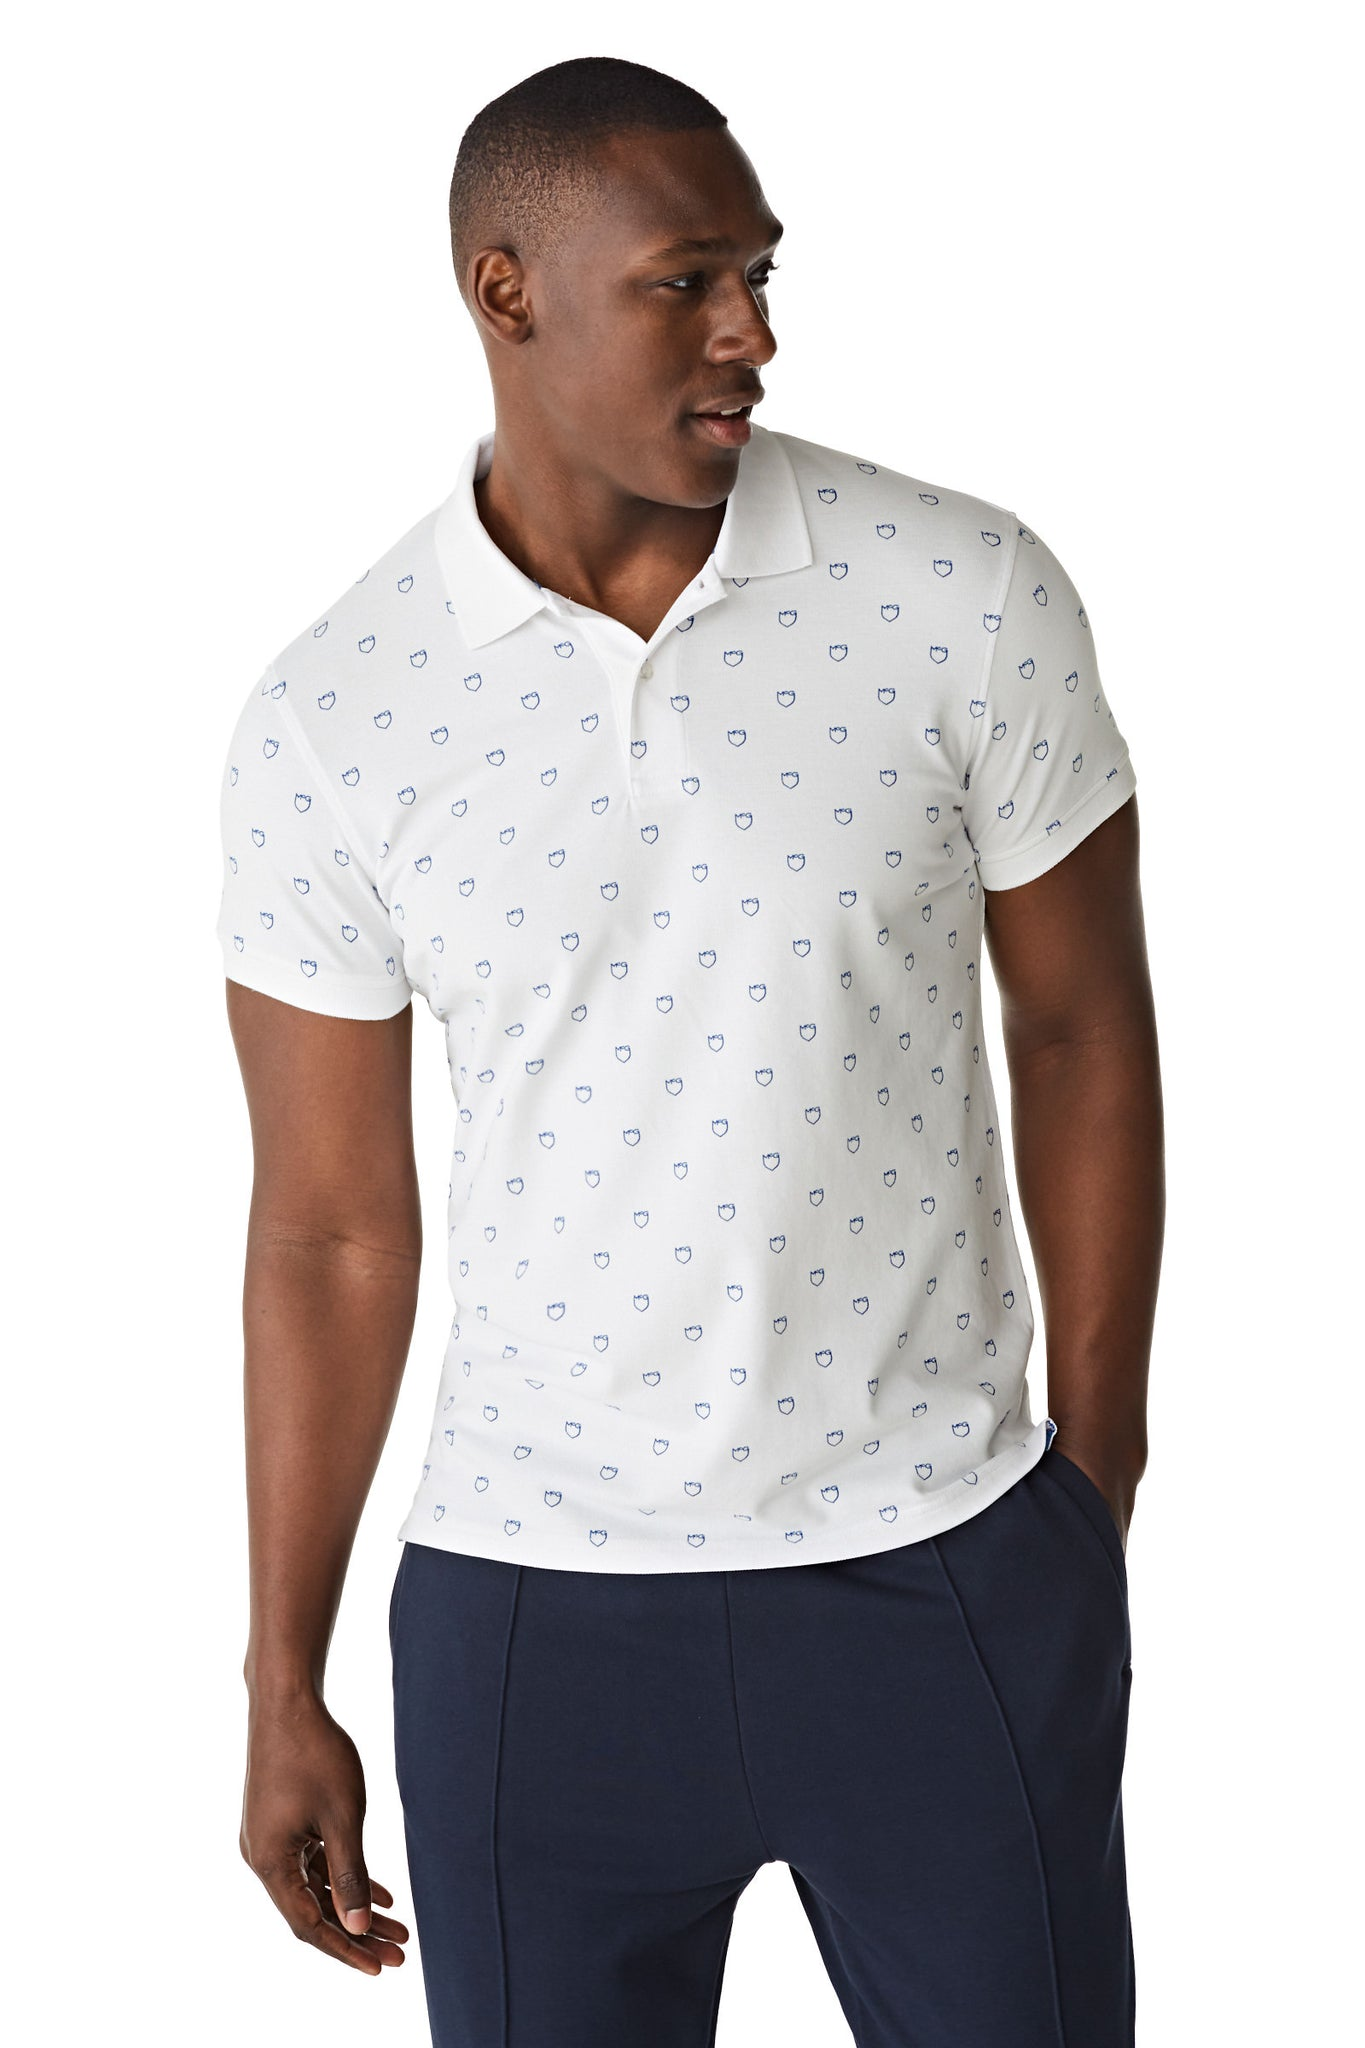 The McG RF Printed Shield Polo S/s